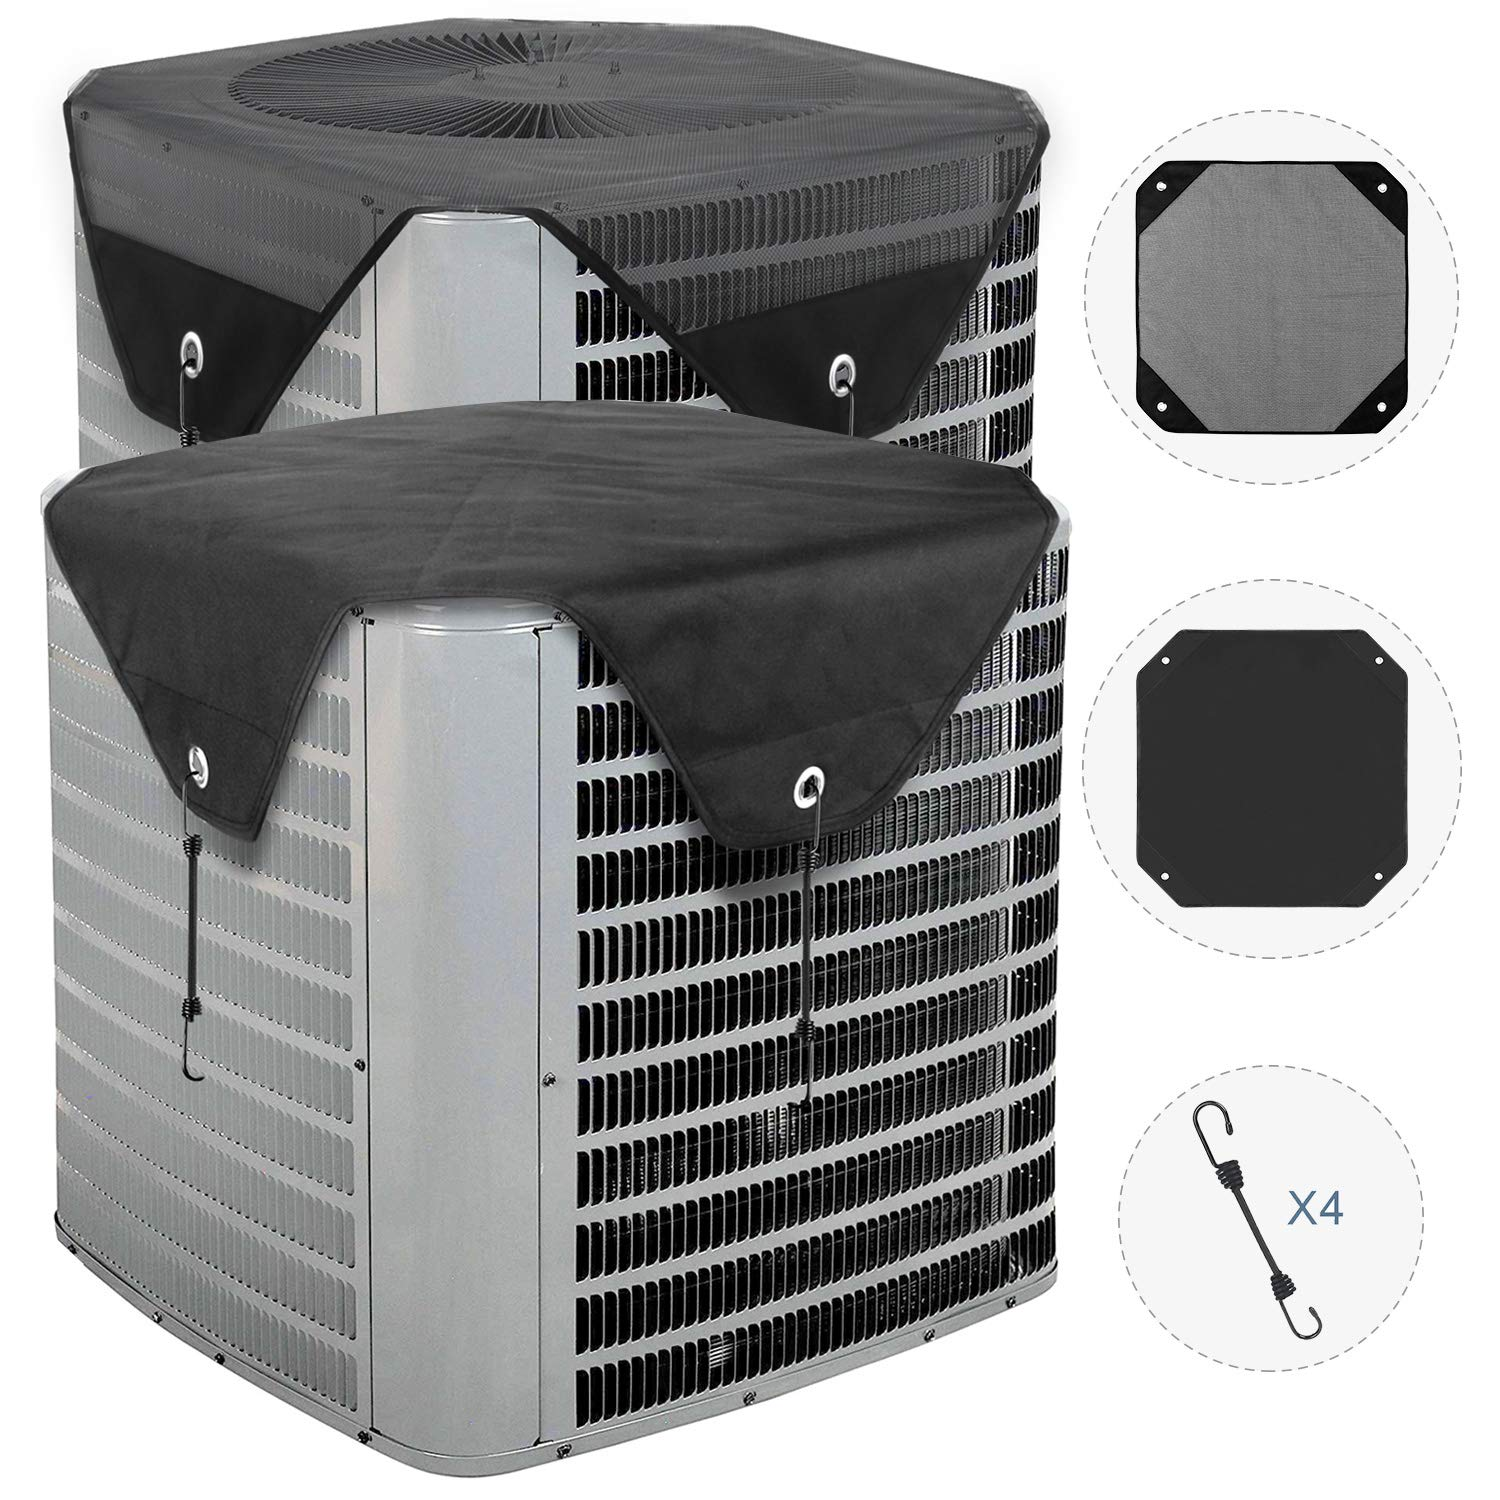 Bestalent Air Conditioner Cover for Outside Units Ac Cover 36 x 36 inches by Bestalent